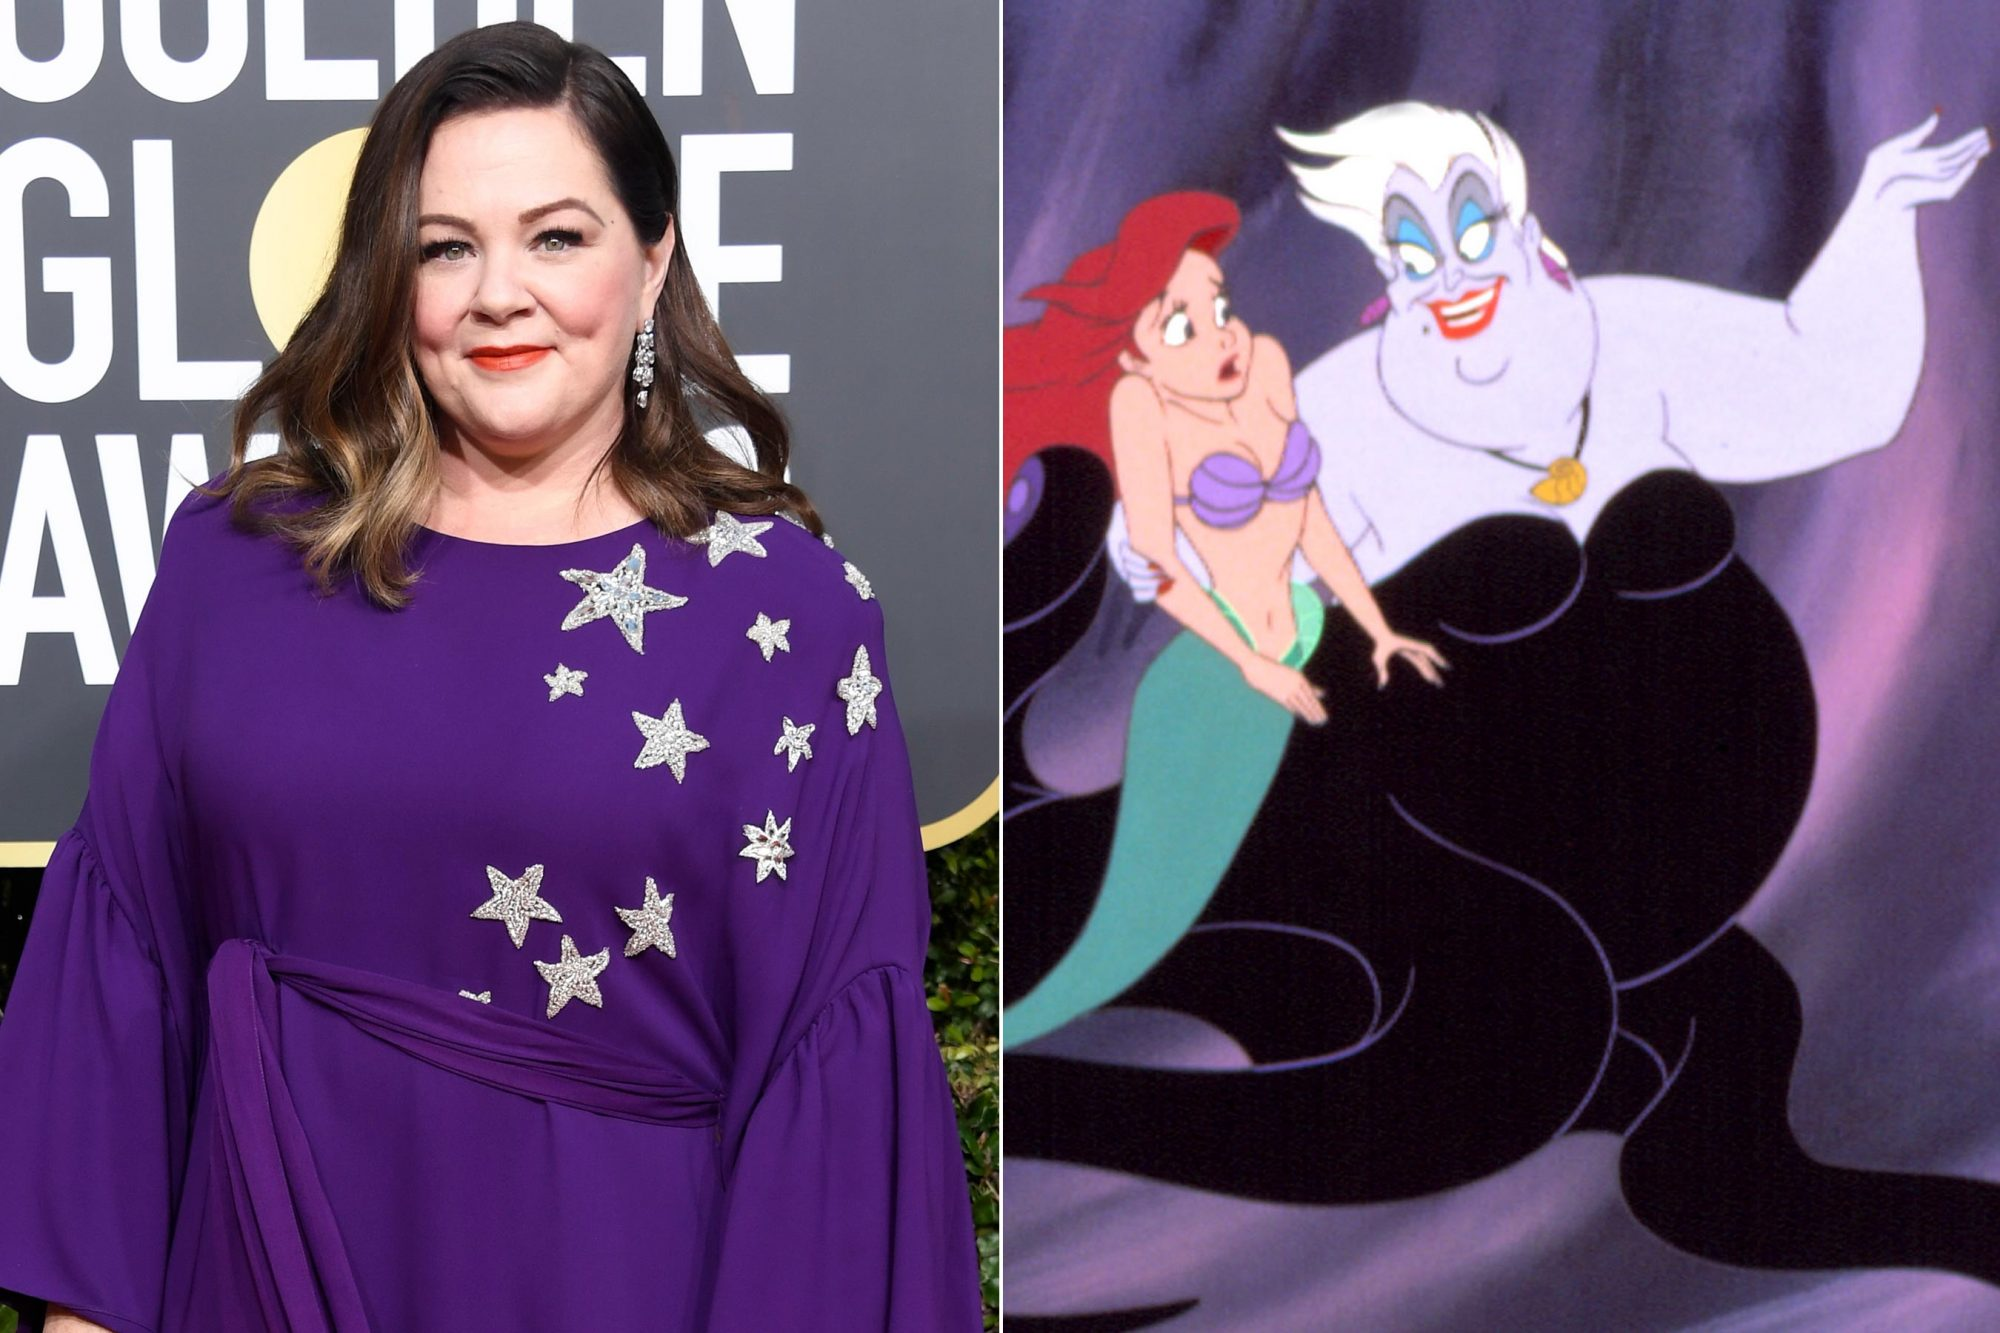 BEVERLY HILLS, CA - JANUARY 06: Melissa McCarthy attends the 76th Annual Golden Globe Awards at The Beverly Hilton Hotel on January 6, 2019 in Beverly Hills, California. (Photo by Frazer Harrison/Getty Images) THE LITTLE MERMAID, Ariel, Ursula, 1989